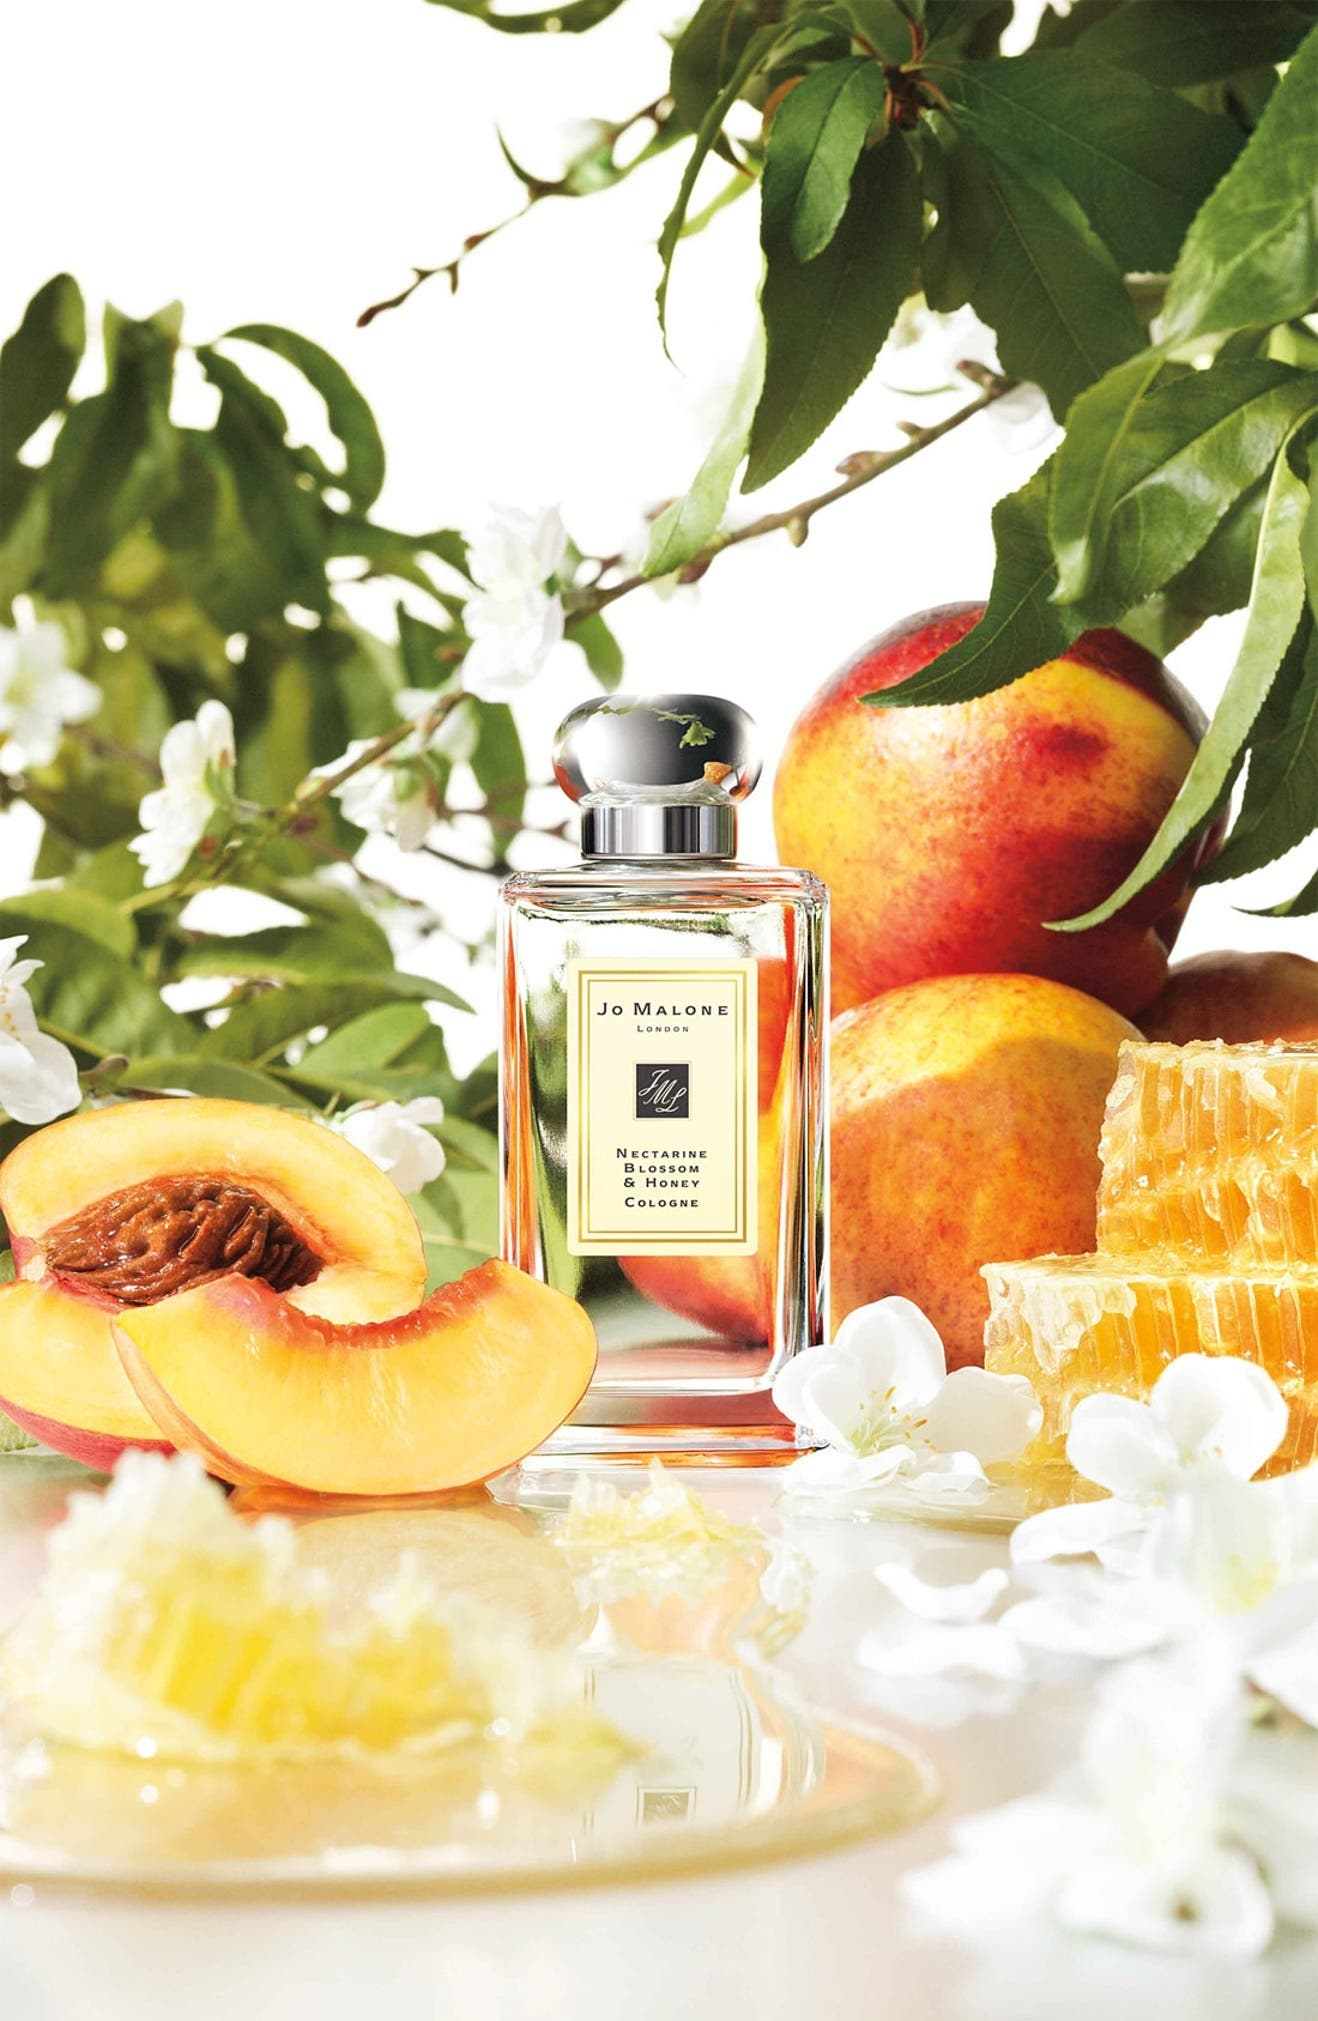 The perfume bottle on a table with nectarines and honeycomb